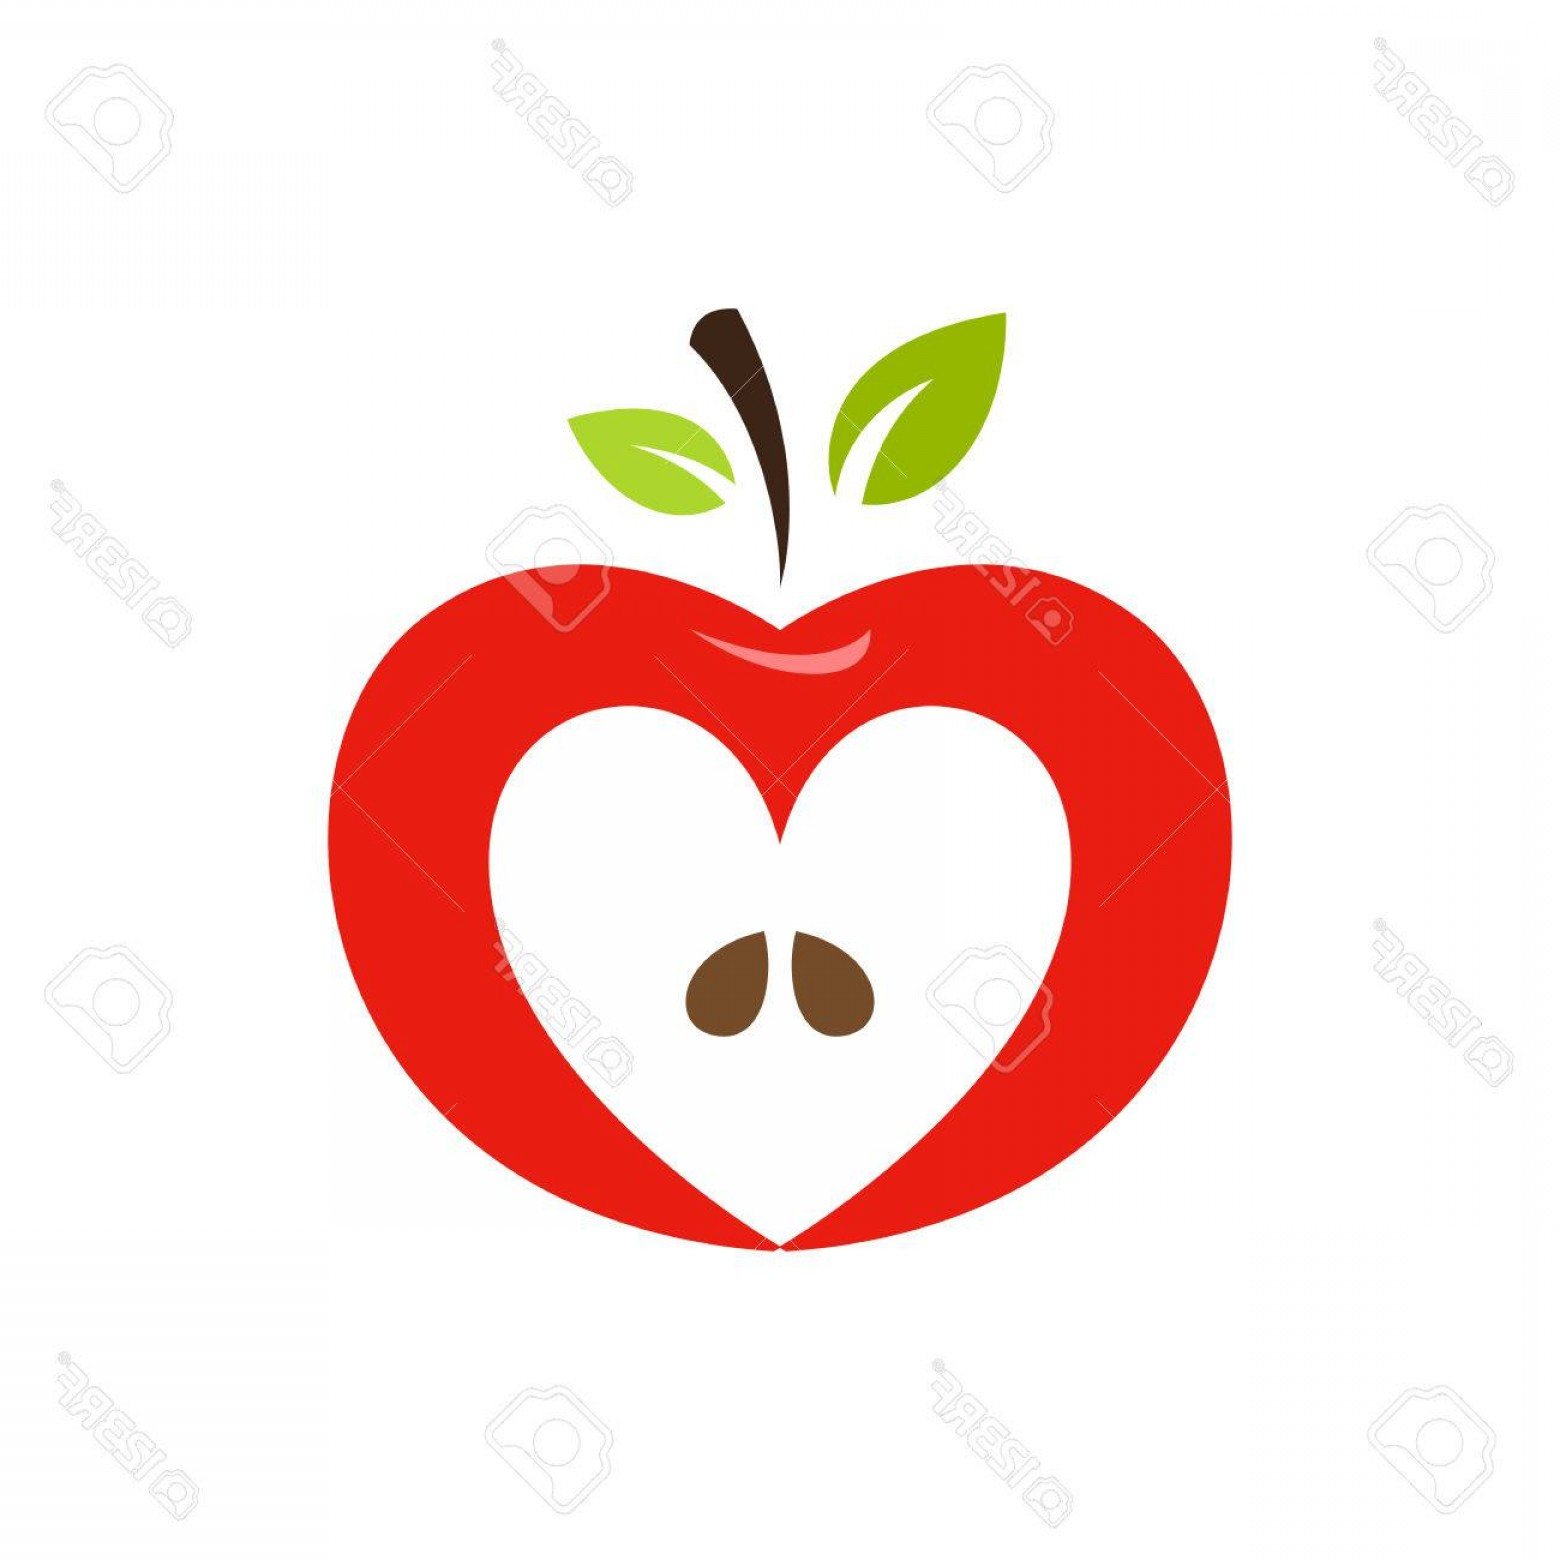 Red Apple Vector Logo: Photostock Vector Heart Shaped Apple Vector Logo Label Emblem Design